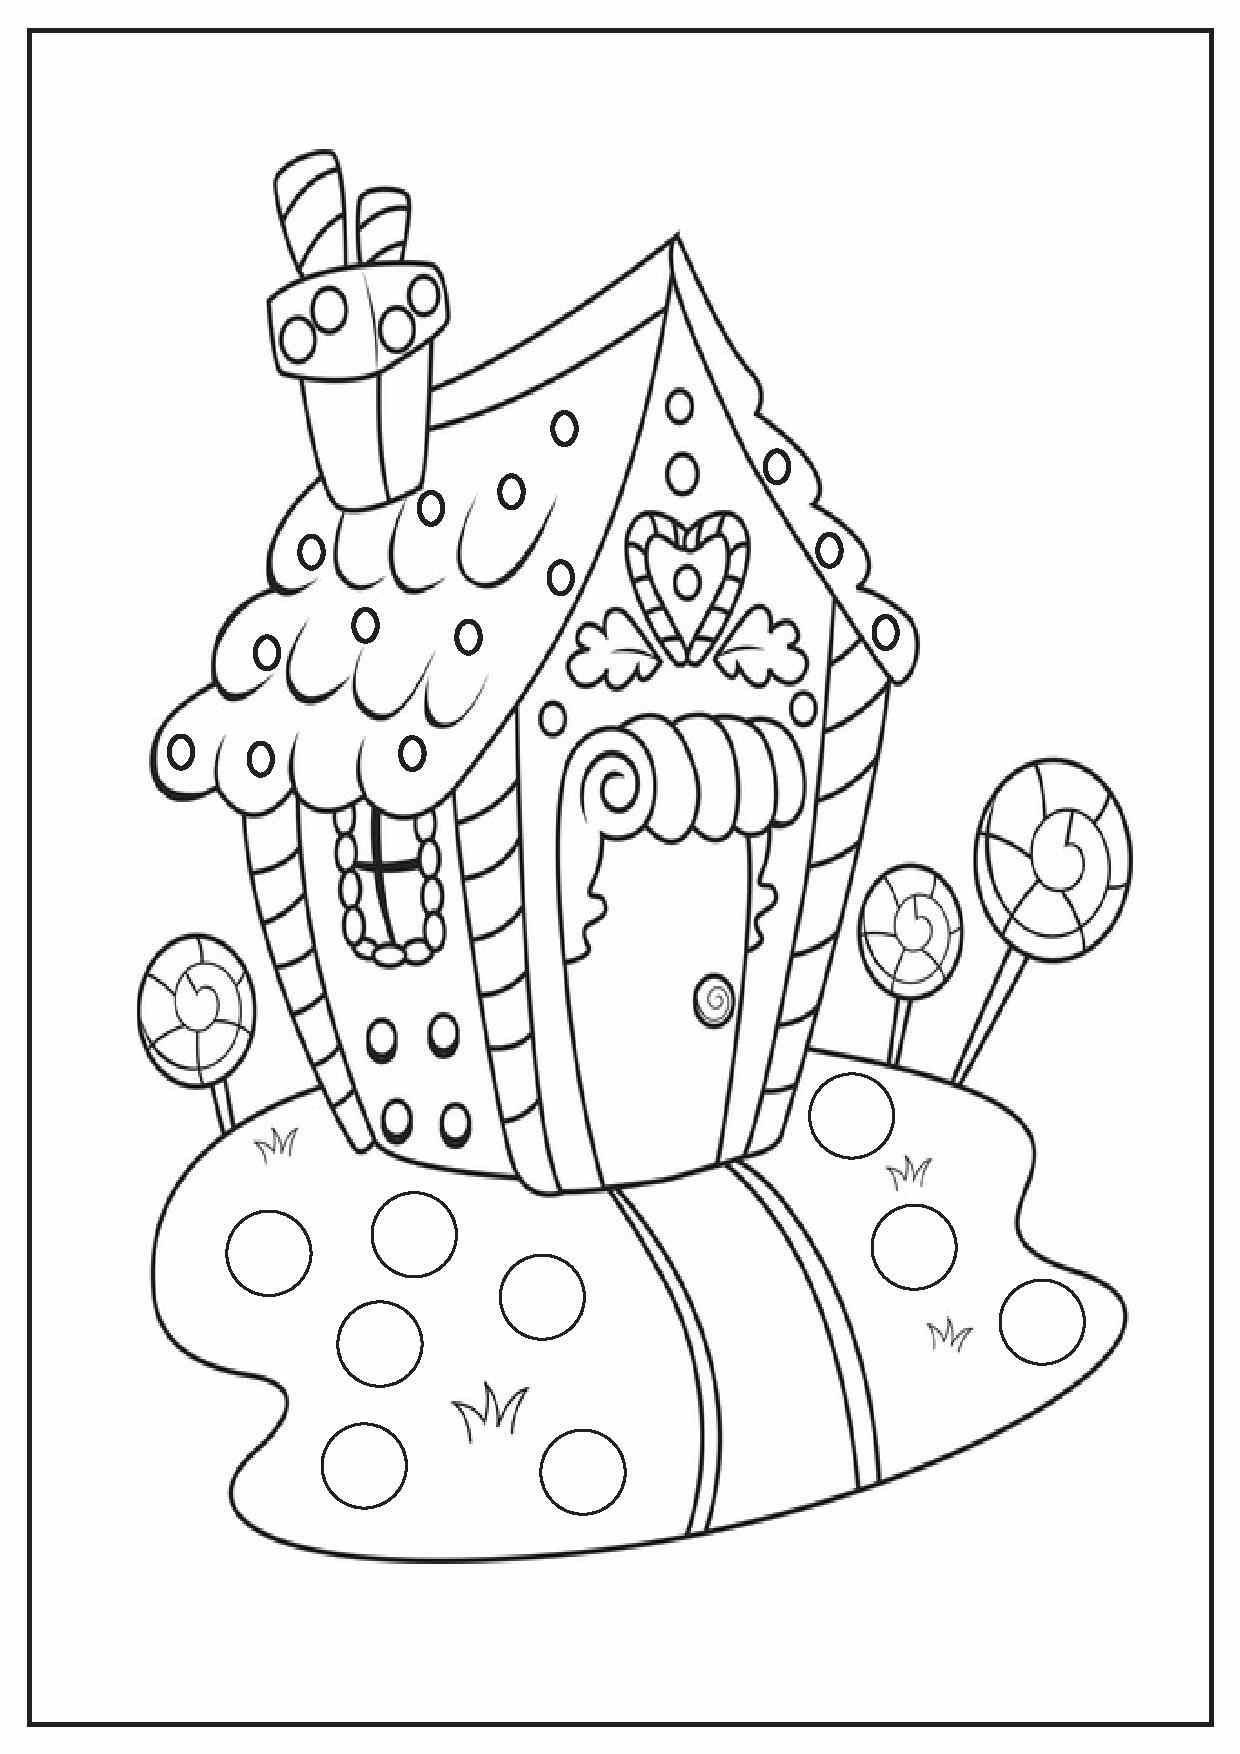 Holiday Coloring Sheets Coloring Pages Holiday Coloring Pages